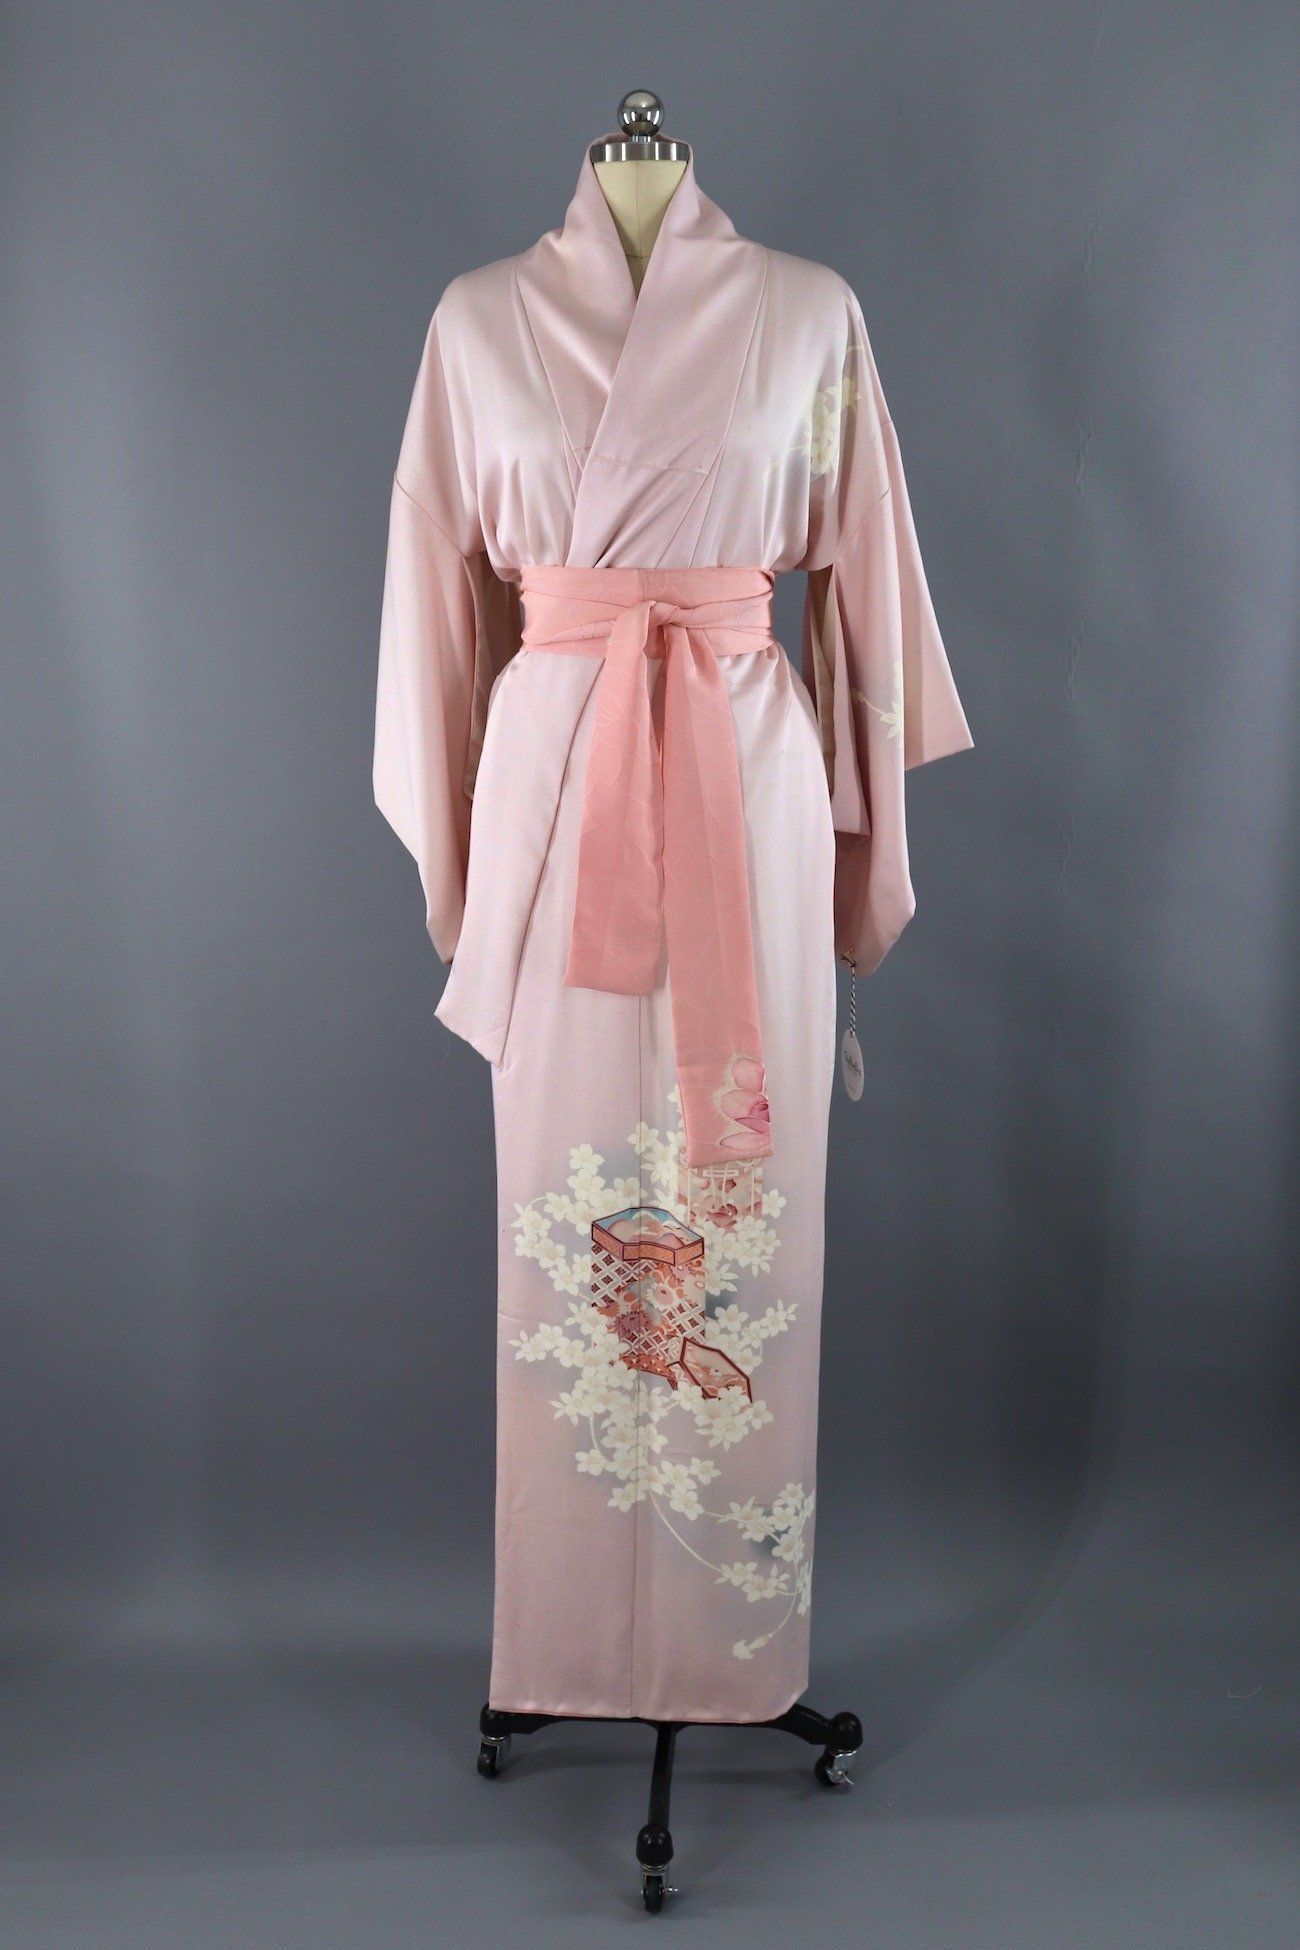 Lingerie Loungewear Vintage Silk Kimono Robe Dressing Gown Wedding Robe 1960s Furisode Pink and White Floral Embroidery